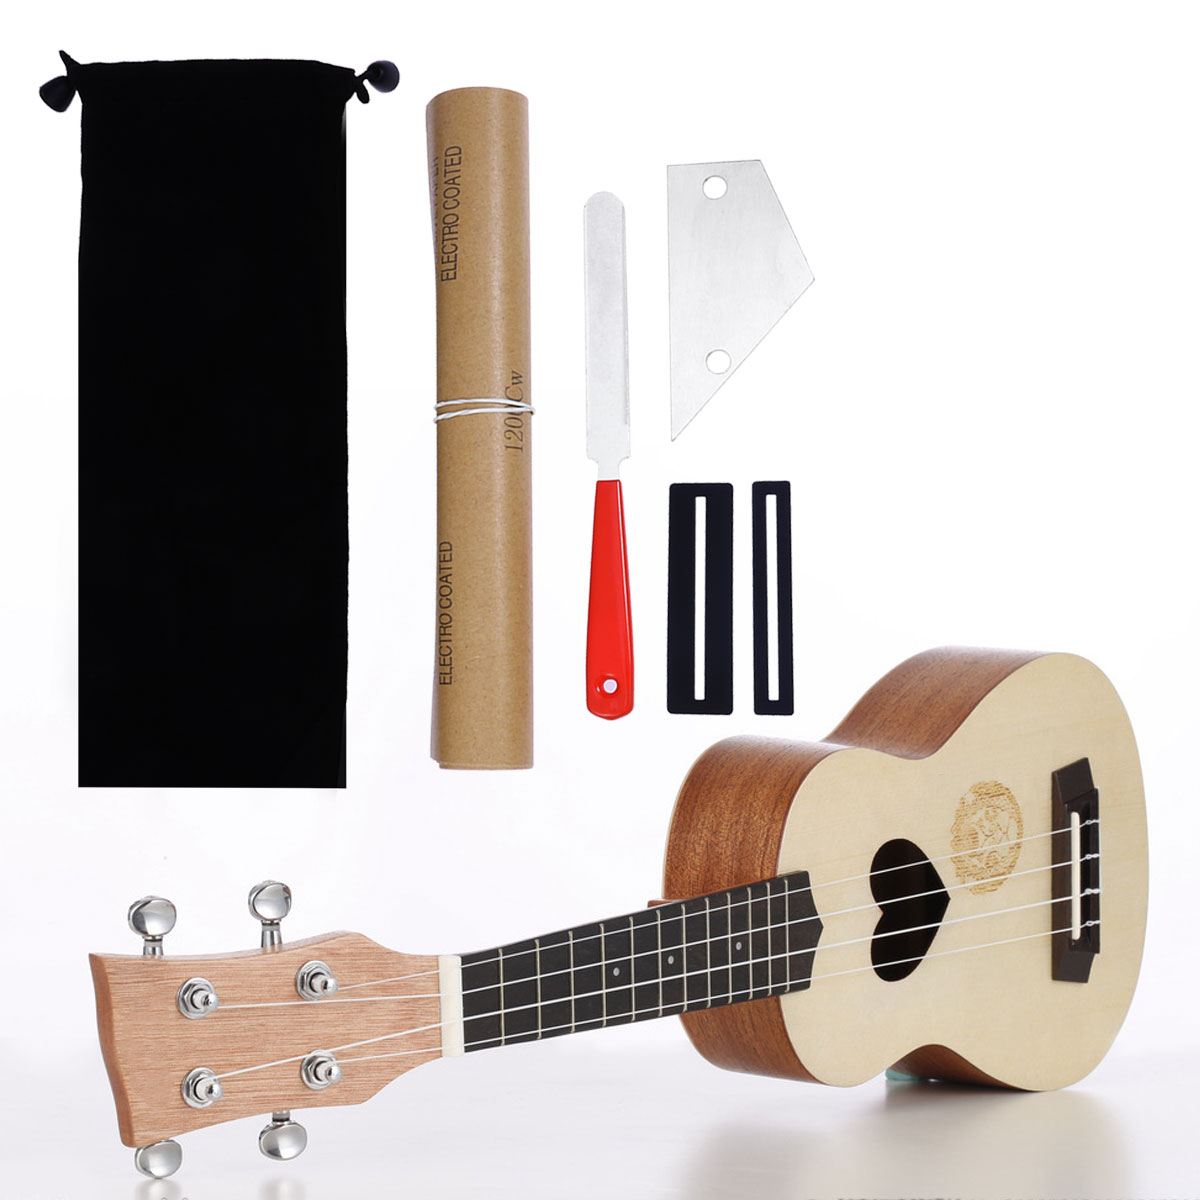 Reliable 1set Guitar Luthier Tool Guitar Fret Crowning Luthier File Fret Rocker Leveling Tool Fingerboard Guard Sanding Paper Accessories Can Be Repeatedly Remolded. Musical Instruments Stringed Instruments